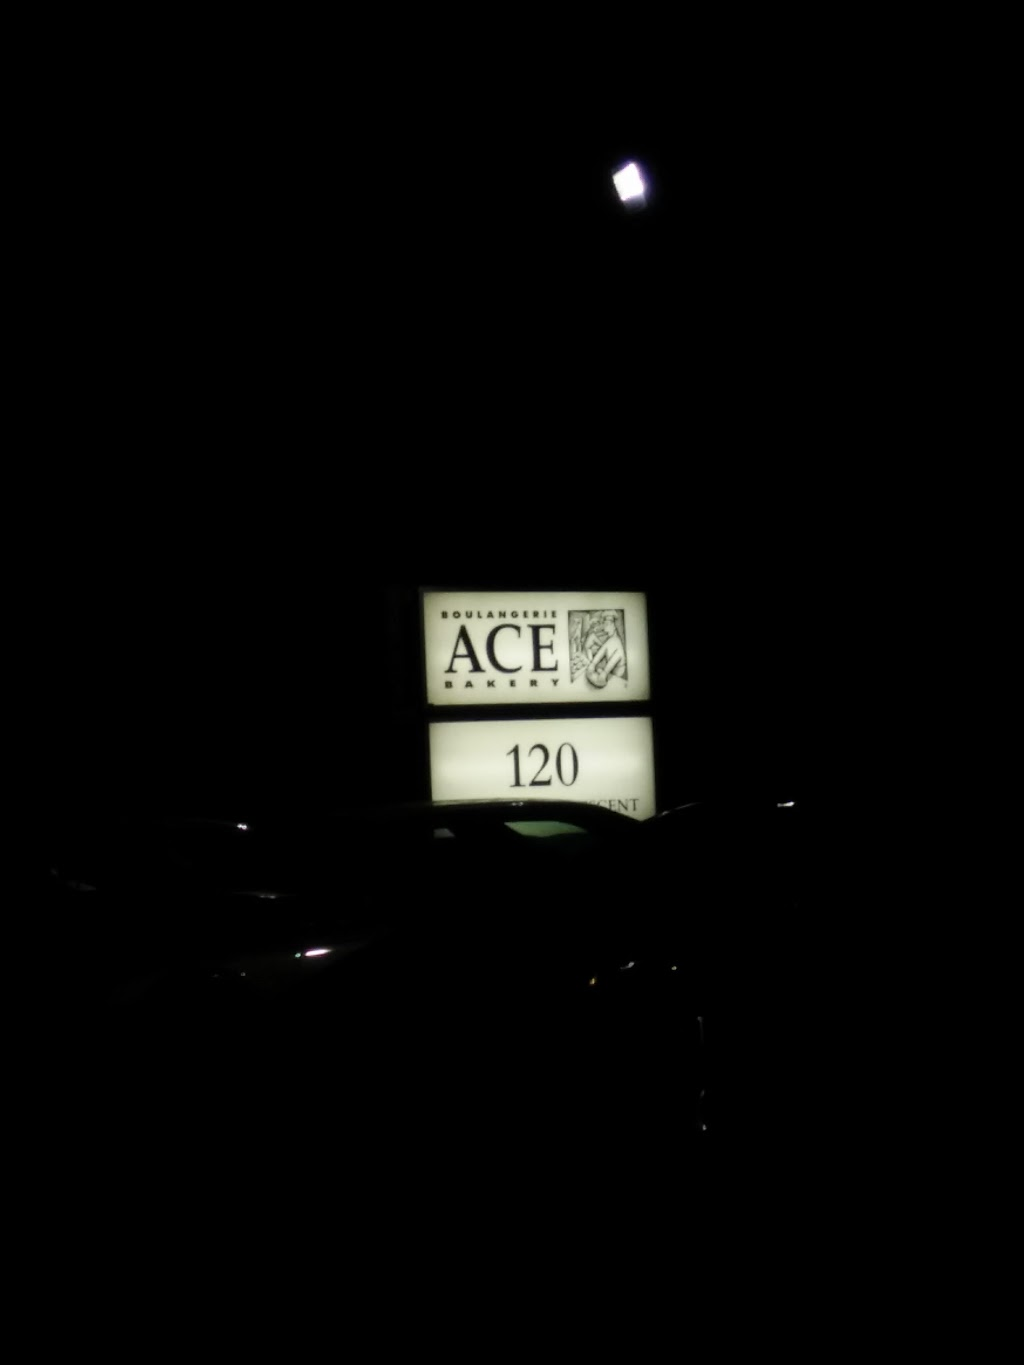 ACE Bakery | bakery | 120 Applewood Crescent, Concord, ON L4K 4E2, Canada | 9057617974 OR +1 905-761-7974